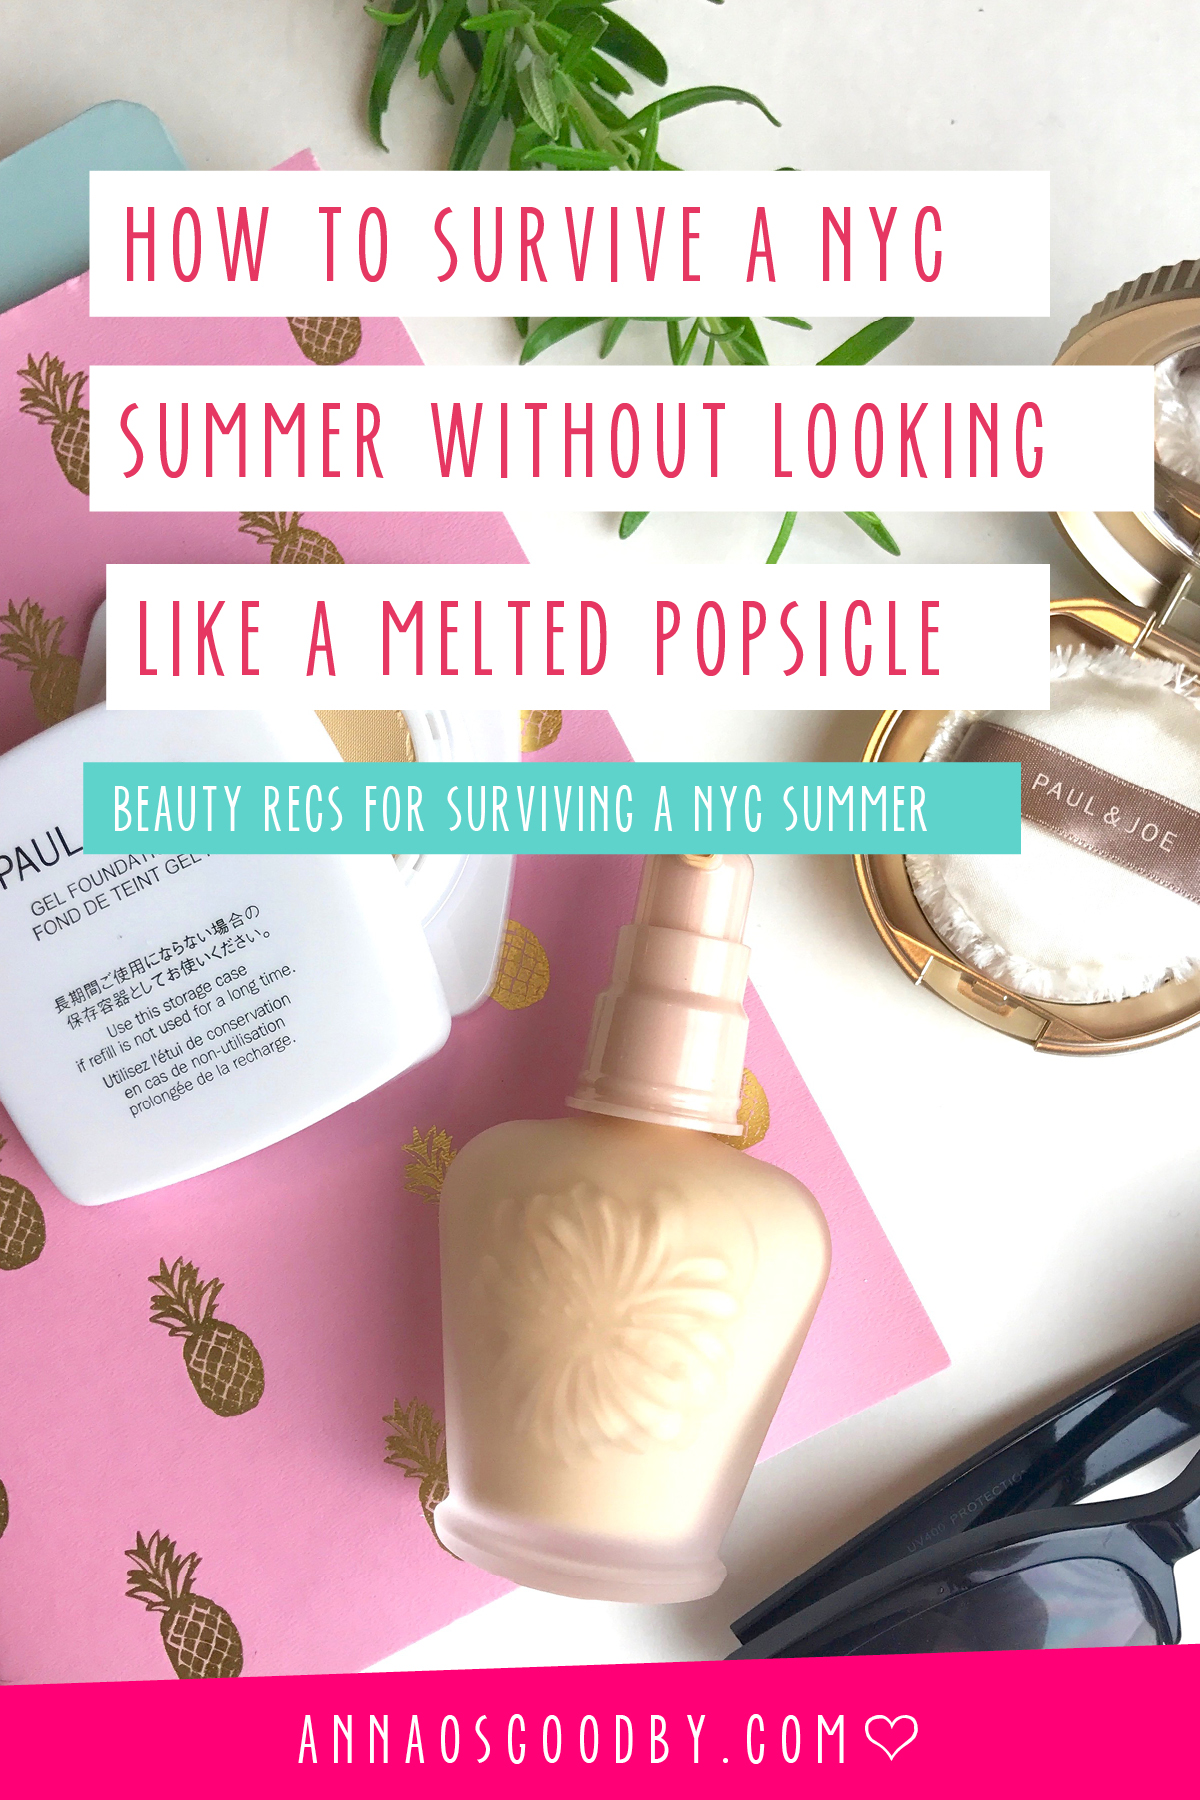 Anna Osgoodby Life + Design NYC Lifestyle Blog :: How to Survive a NYC Summer Without Looking Like a Melted Popsicle